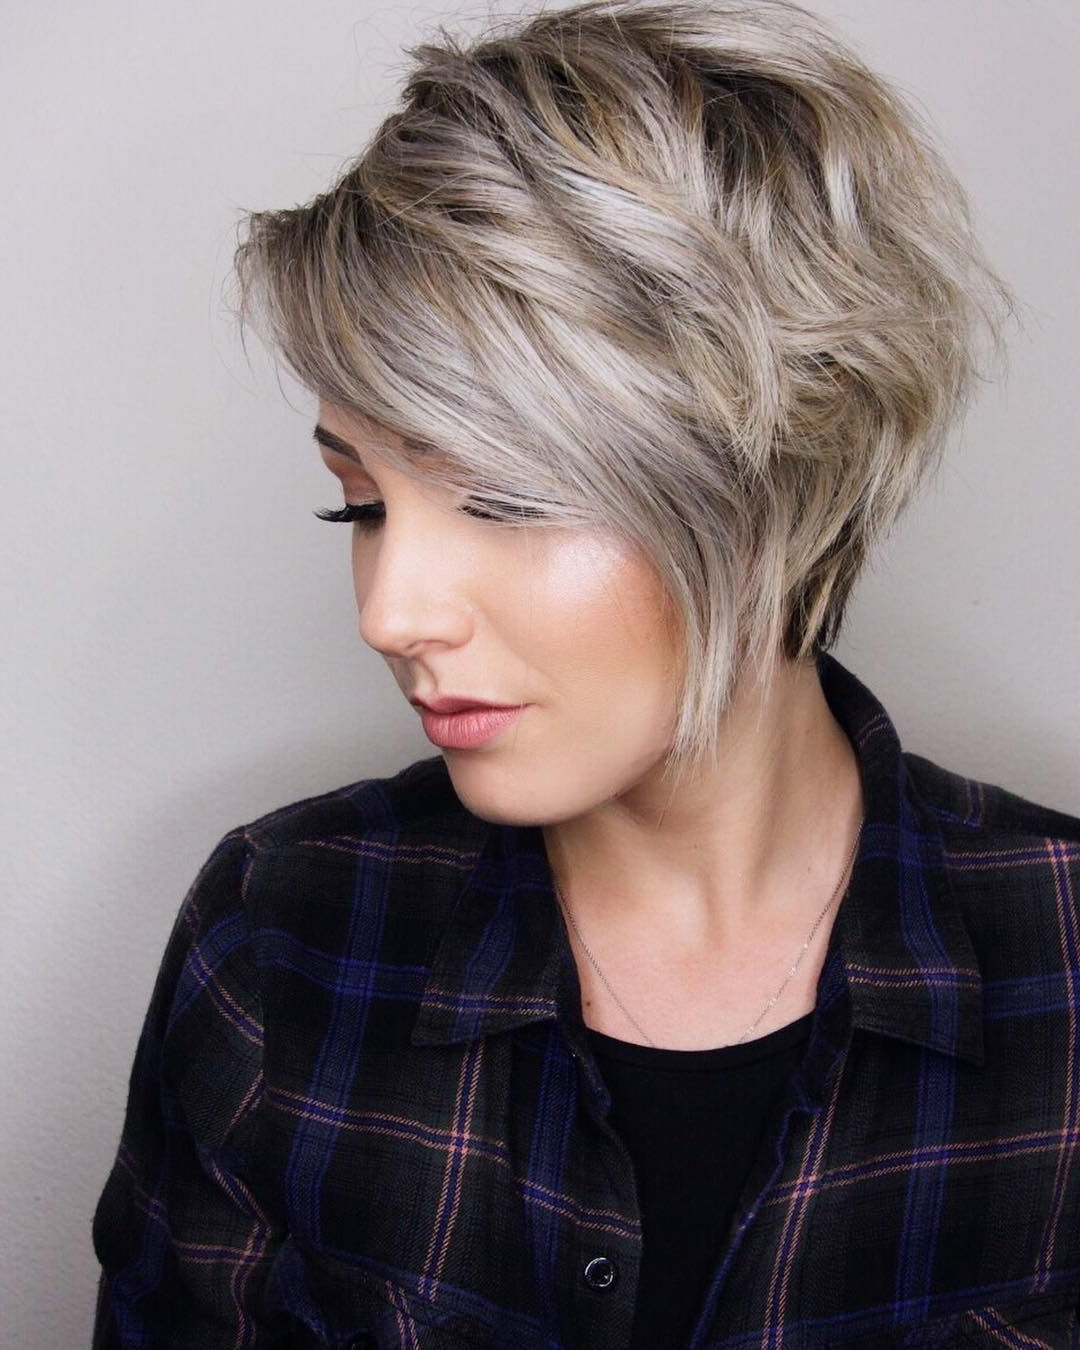 10 Trendy Layered Short Haircut Ideas For 2017 2018 – 'extra In Very Short Haircuts For Women With Thick Hair (View 2 of 25)